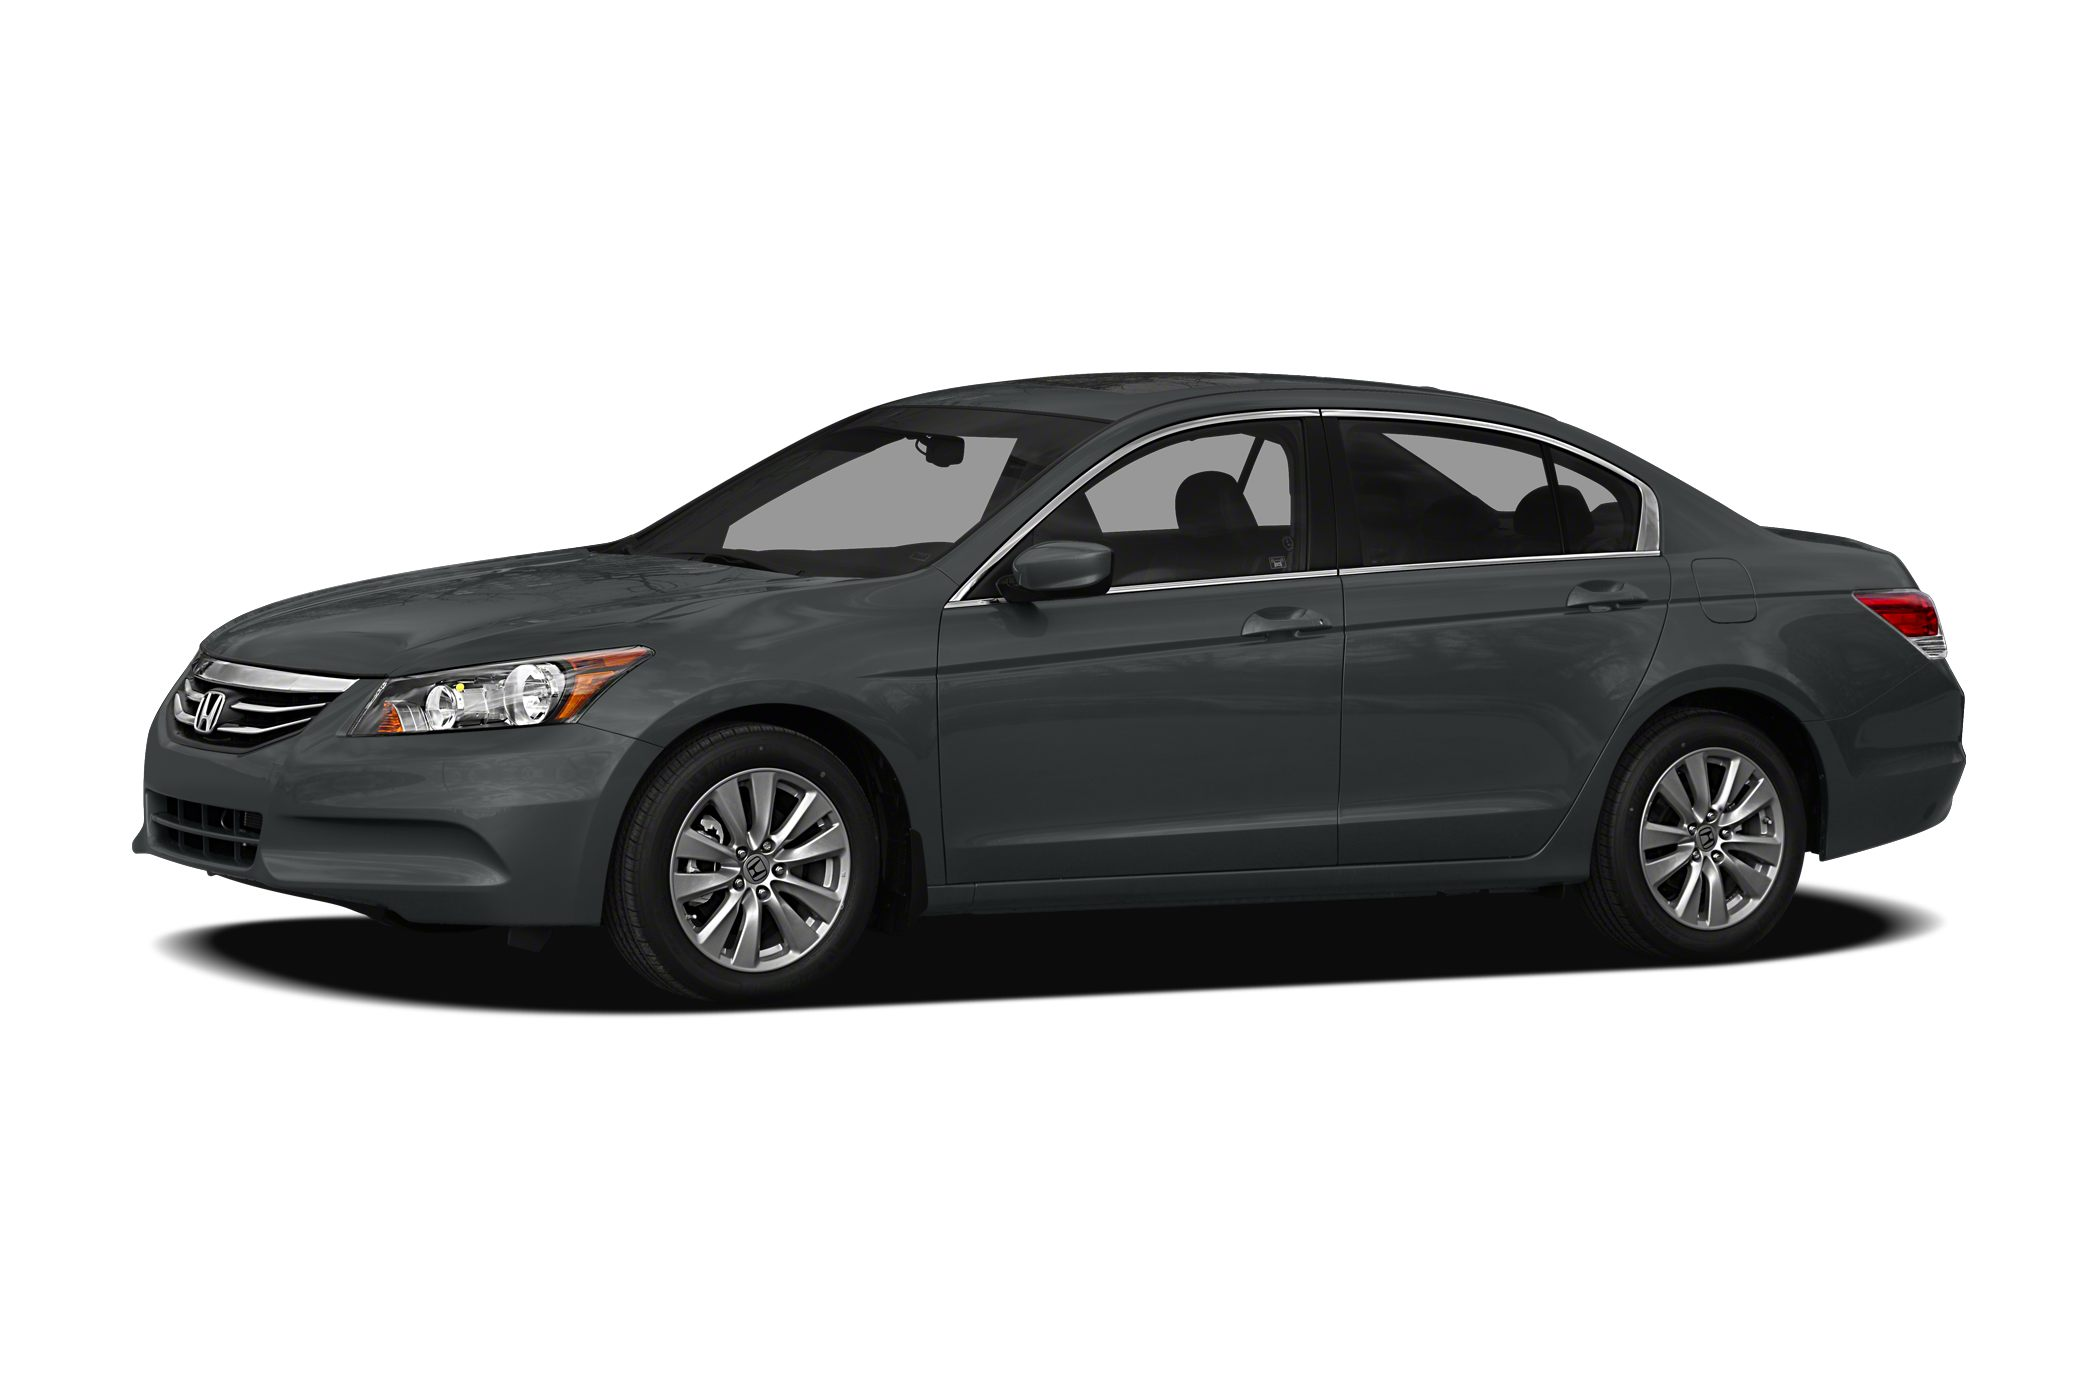 2011 Honda Accord LX for sale VIN 1HGCP2F30BA